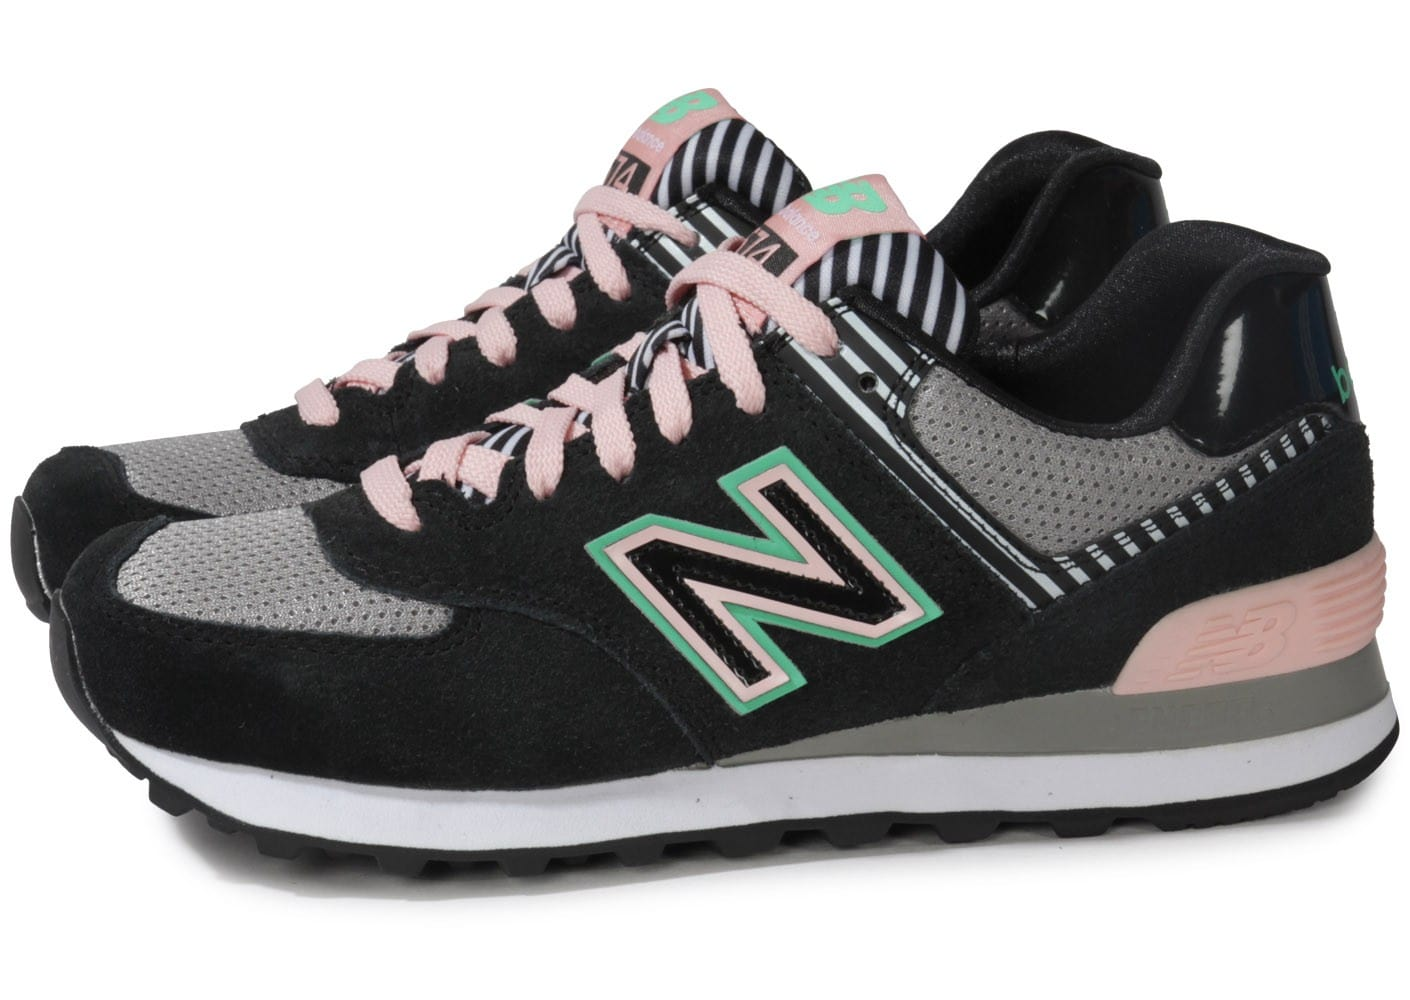 new balance wl574 bfk noir rose chaussures chaussures chausport. Black Bedroom Furniture Sets. Home Design Ideas